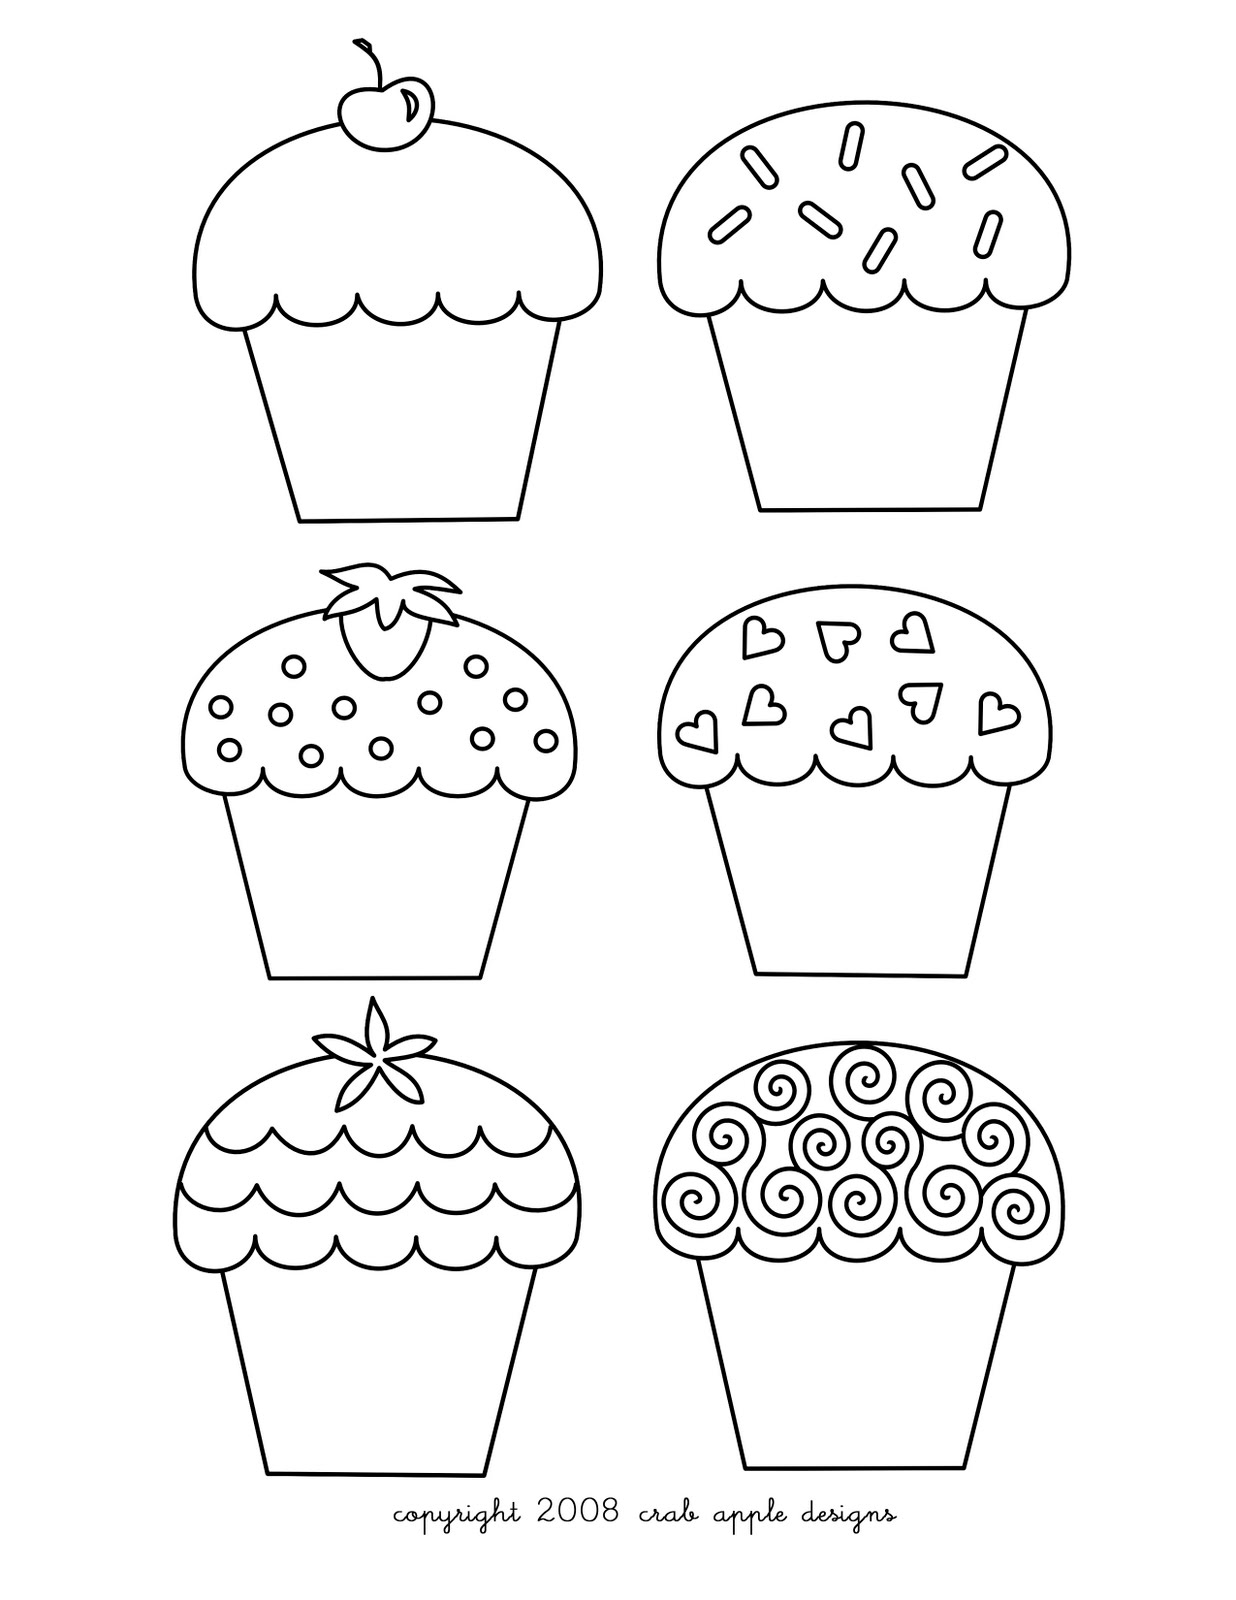 Colouring Images Of Cupcake : Cupcakes Coloring Pages - Free Printable Pictures Coloring ...